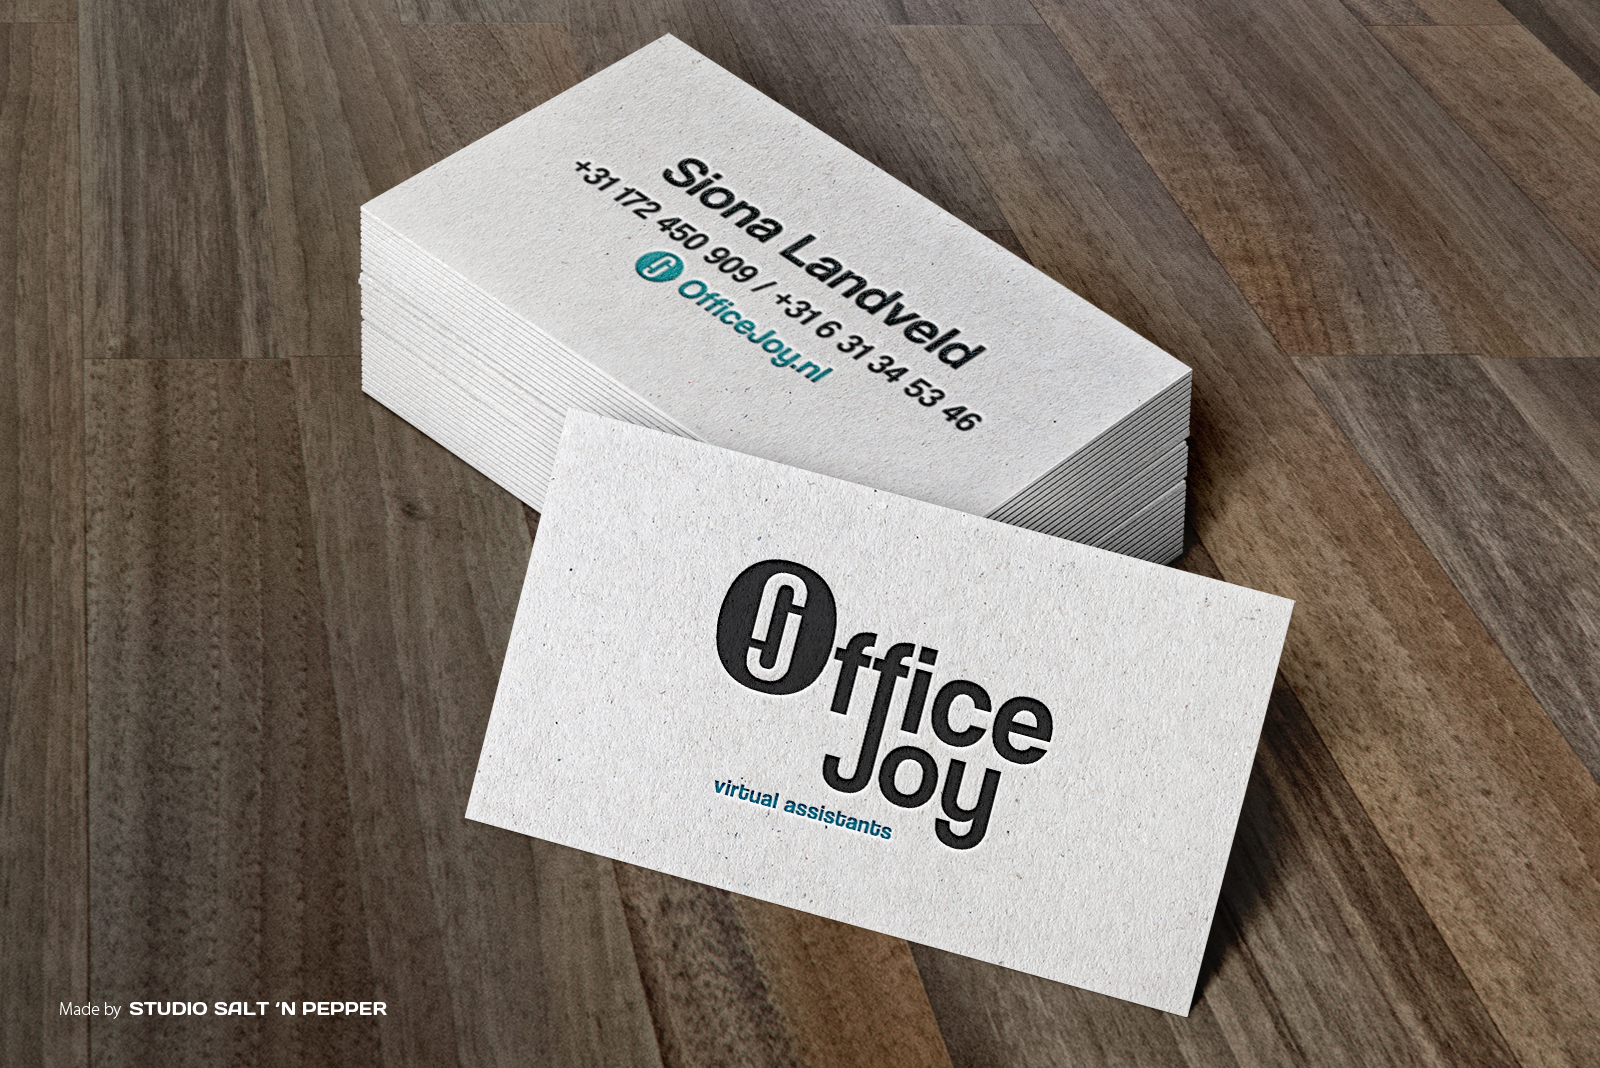 OfficeJoy